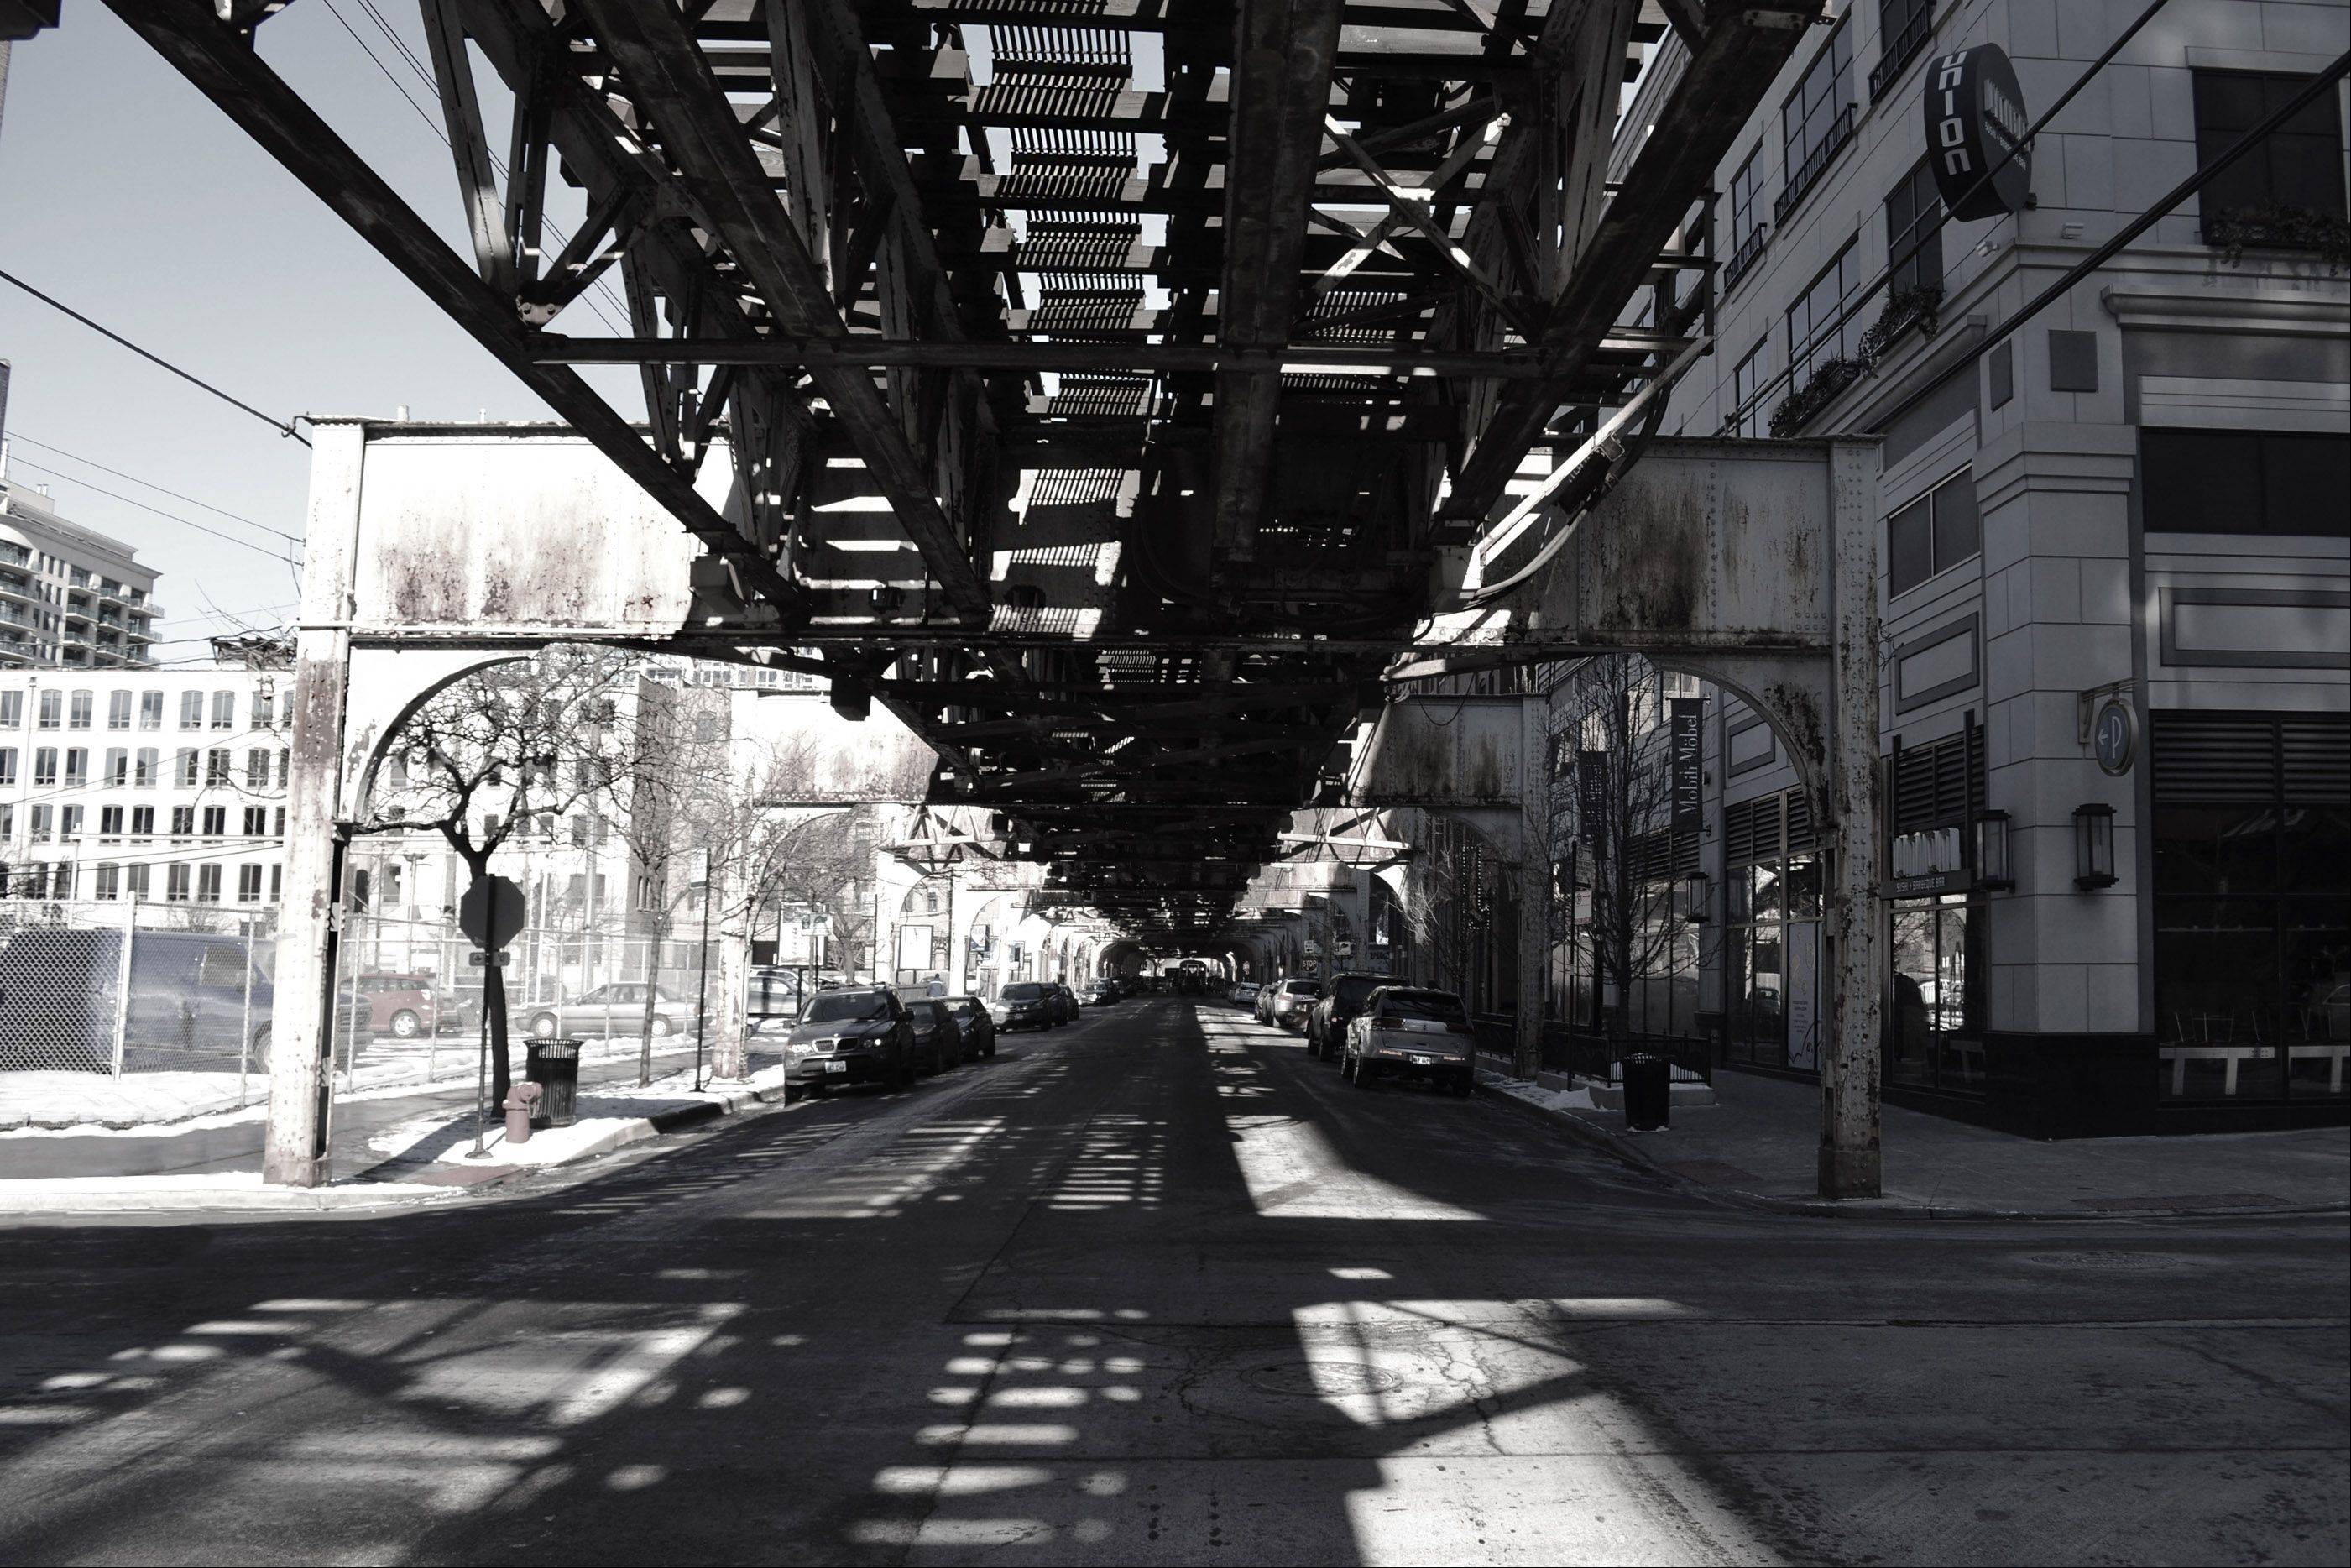 I took this photograph while in downtown Chicago this January. I am an AP Studio Art student at Naperville North High School, and thought the underside of this bridge conveyed a very striking yet beautiful image. The interesting lines and architecture make it a very dramatic black and white image.